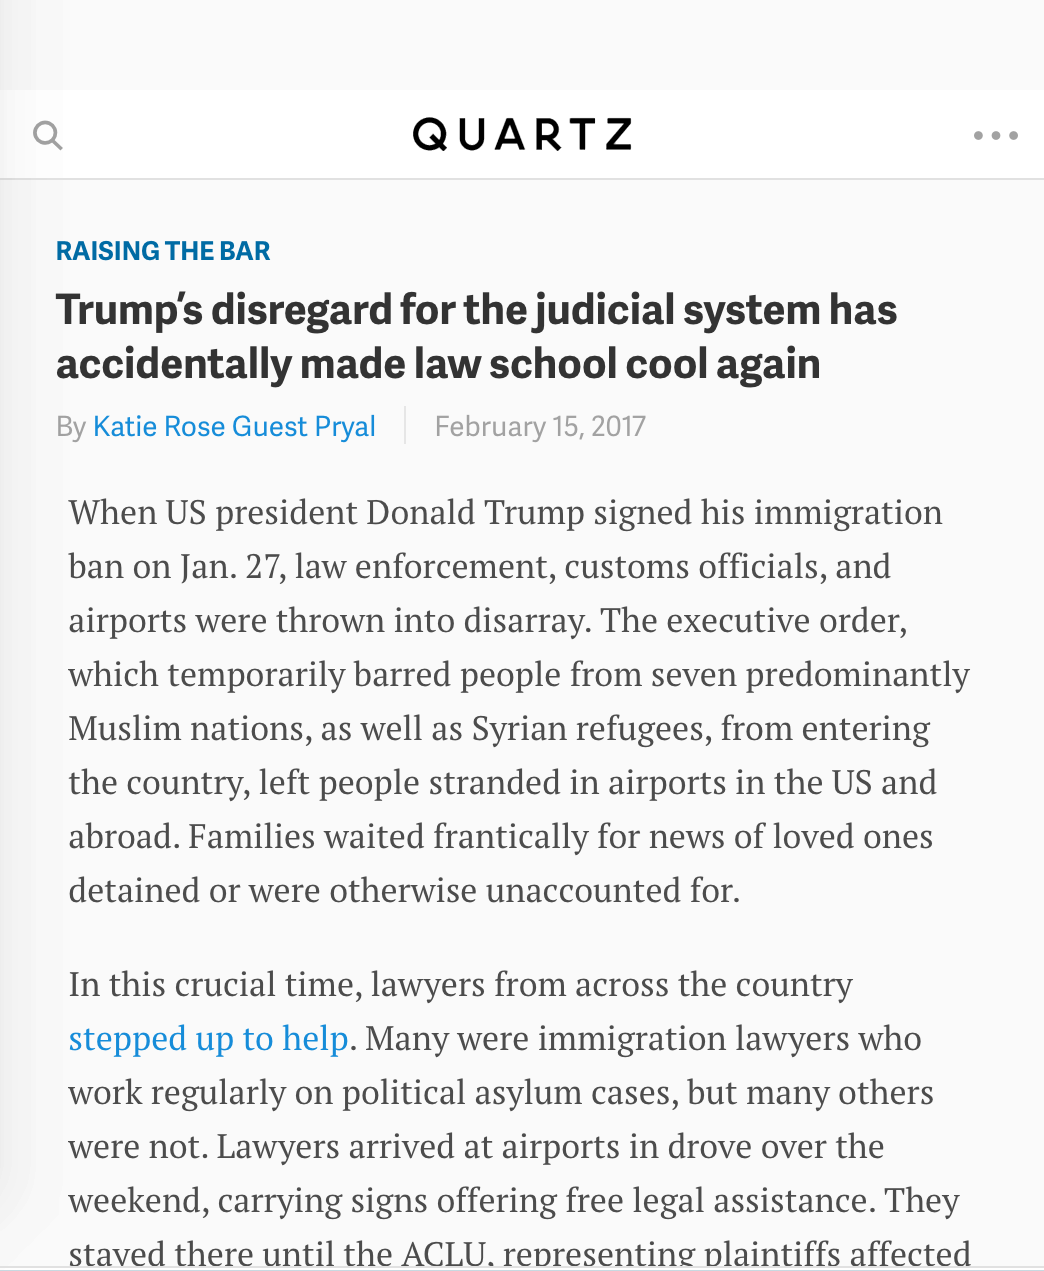 Quartz: Trump's disregard for the judicial system has accidentally made law school cool again